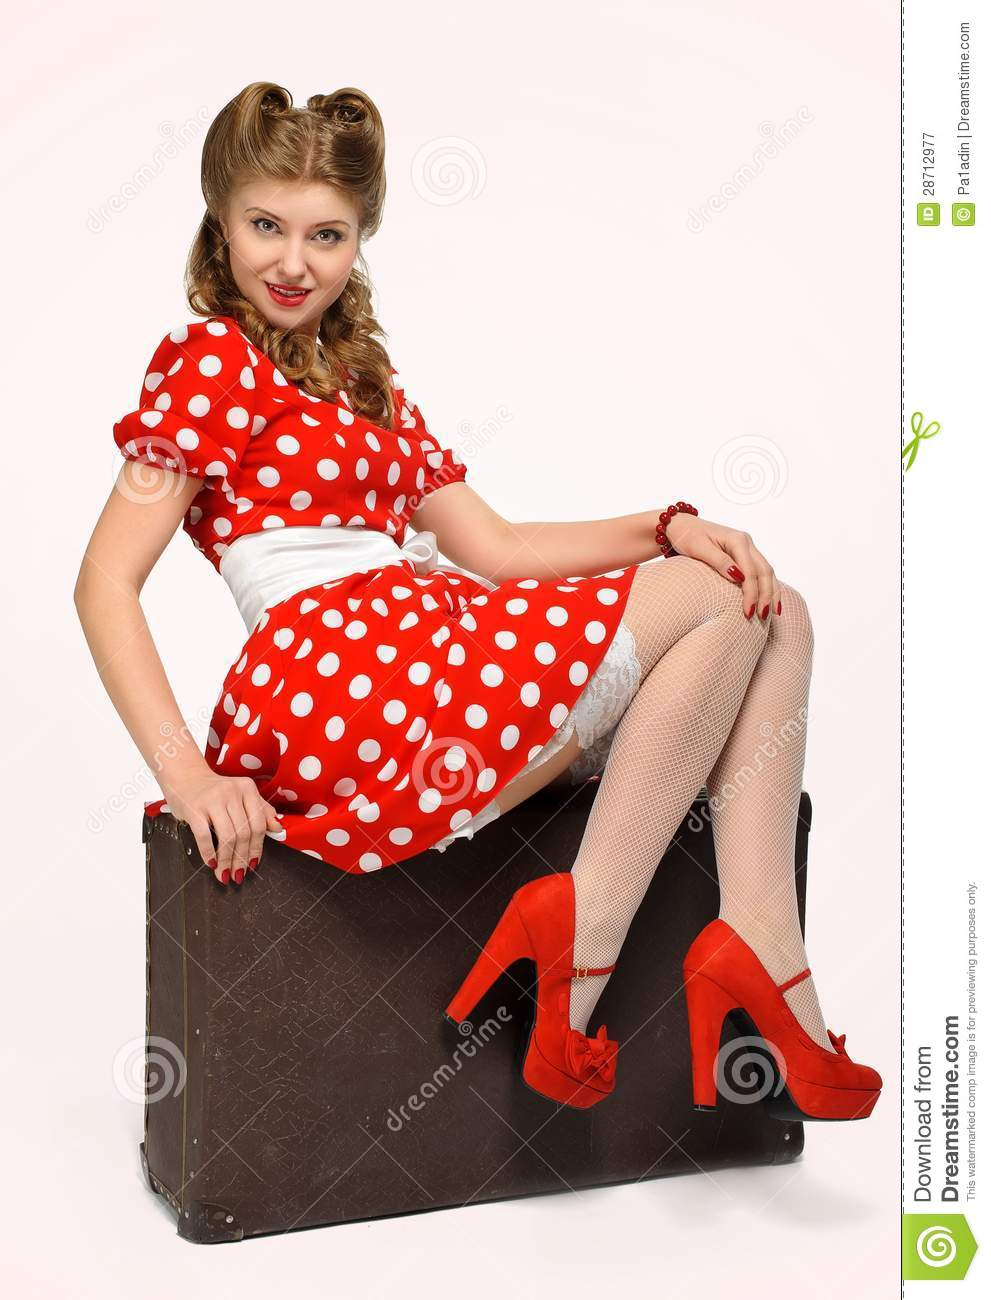 Pretty pinup girl royalty free stock photography image 28712977 - Photo pin up ...